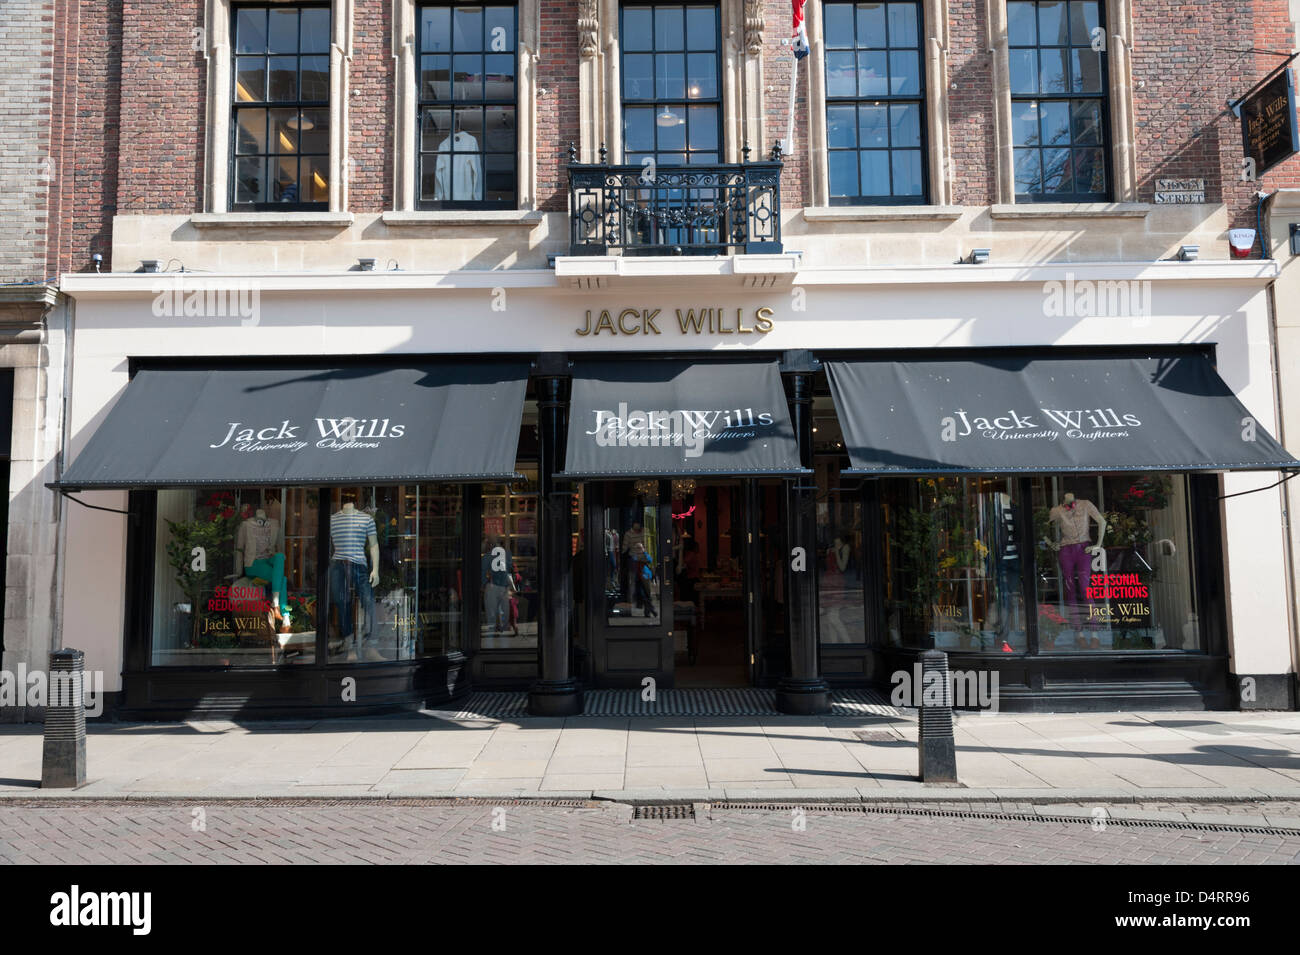 The new Jack Will's clothing shop St Andrew's Street Cambridge UK - Stock Image